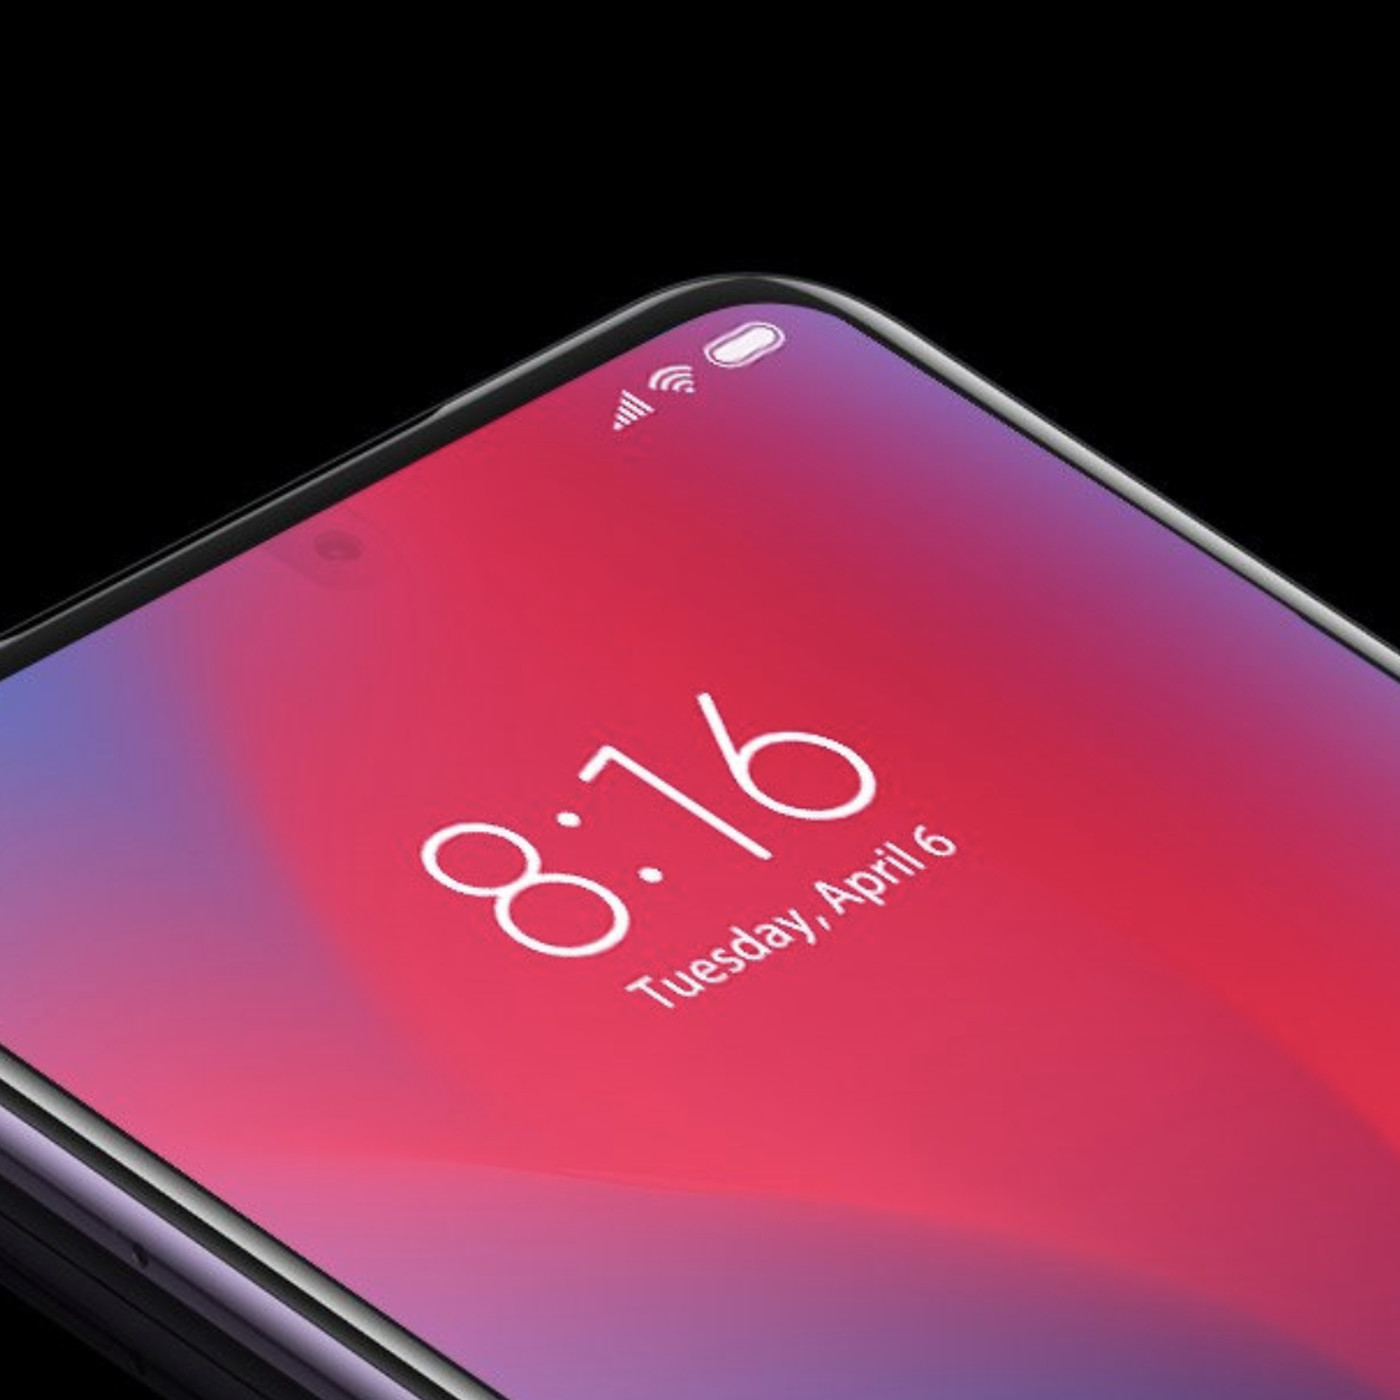 Xiaomi introduces third-generation under-screen camera technology and will launch phones in 2021